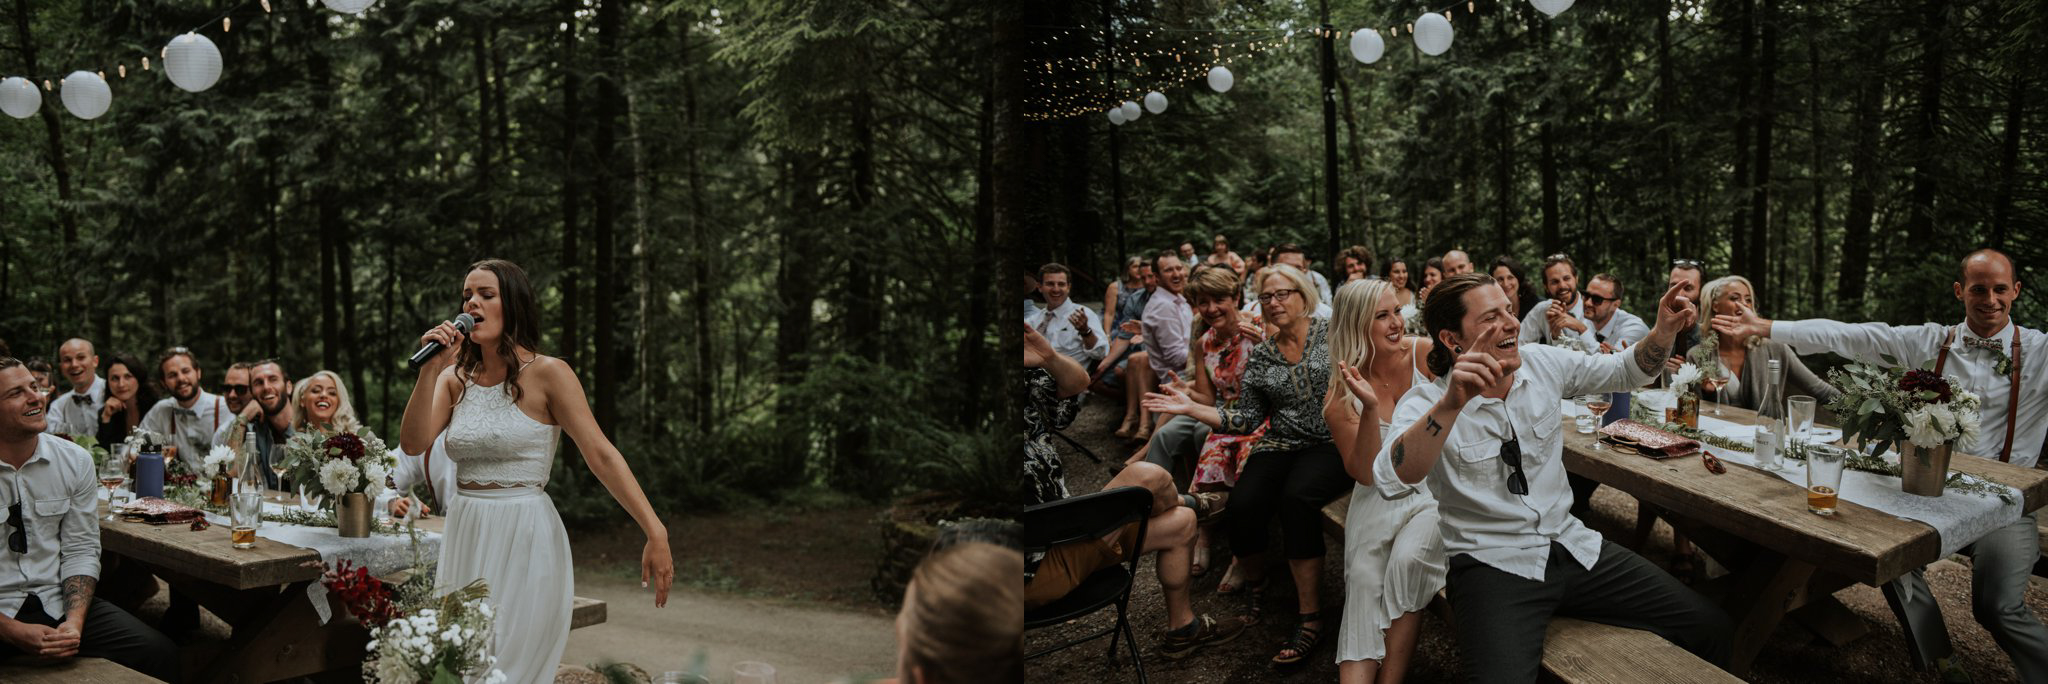 intimate-boho-campfire-wedding-shangri-la-on-the-green-seattle-wedding-photographer-caitlyn-nikula-photography-113.jpg